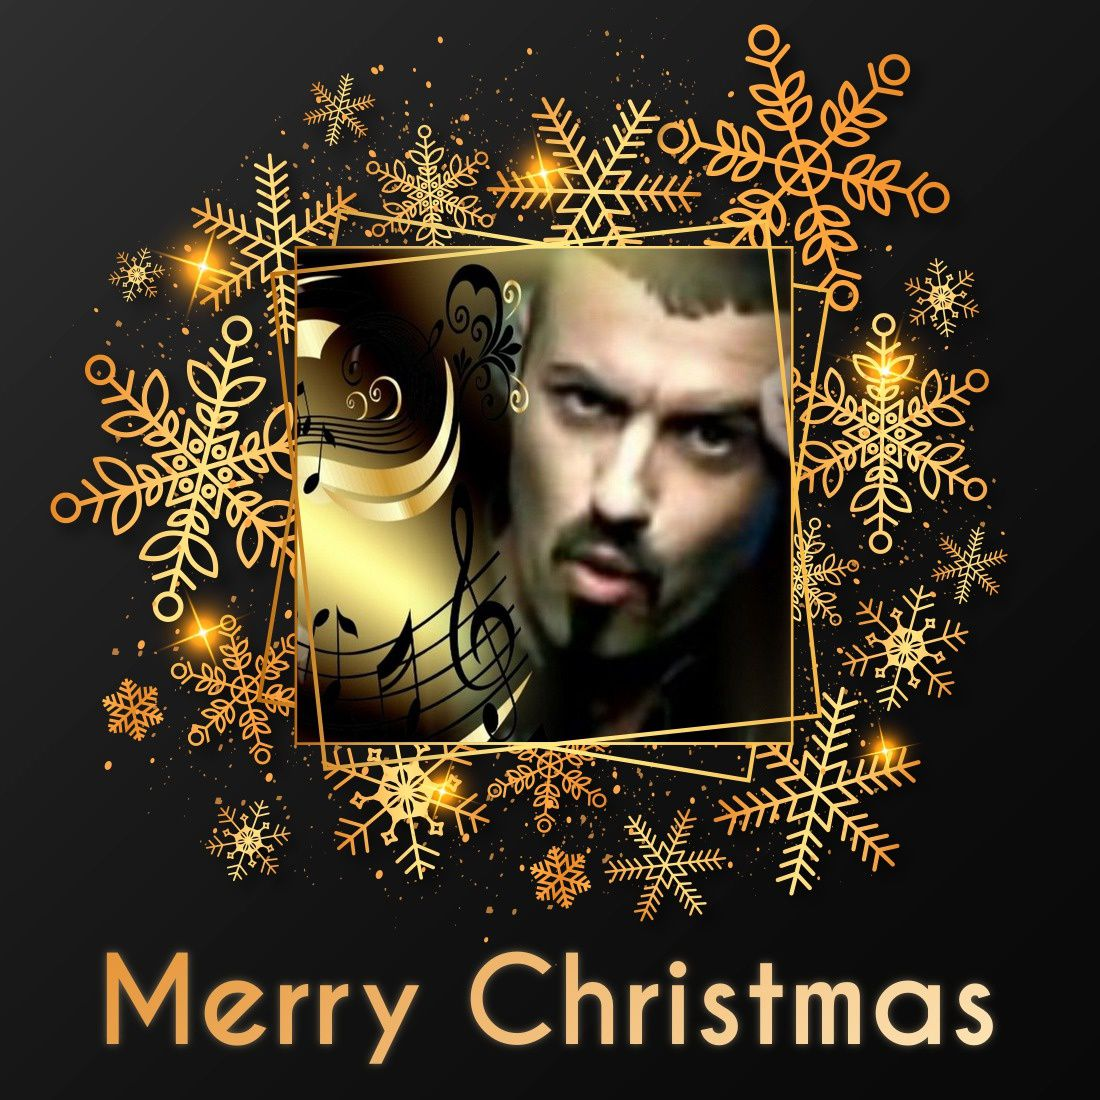 GEORGE MICHAEL - CHRISTMAS DAY - J - 2 !!